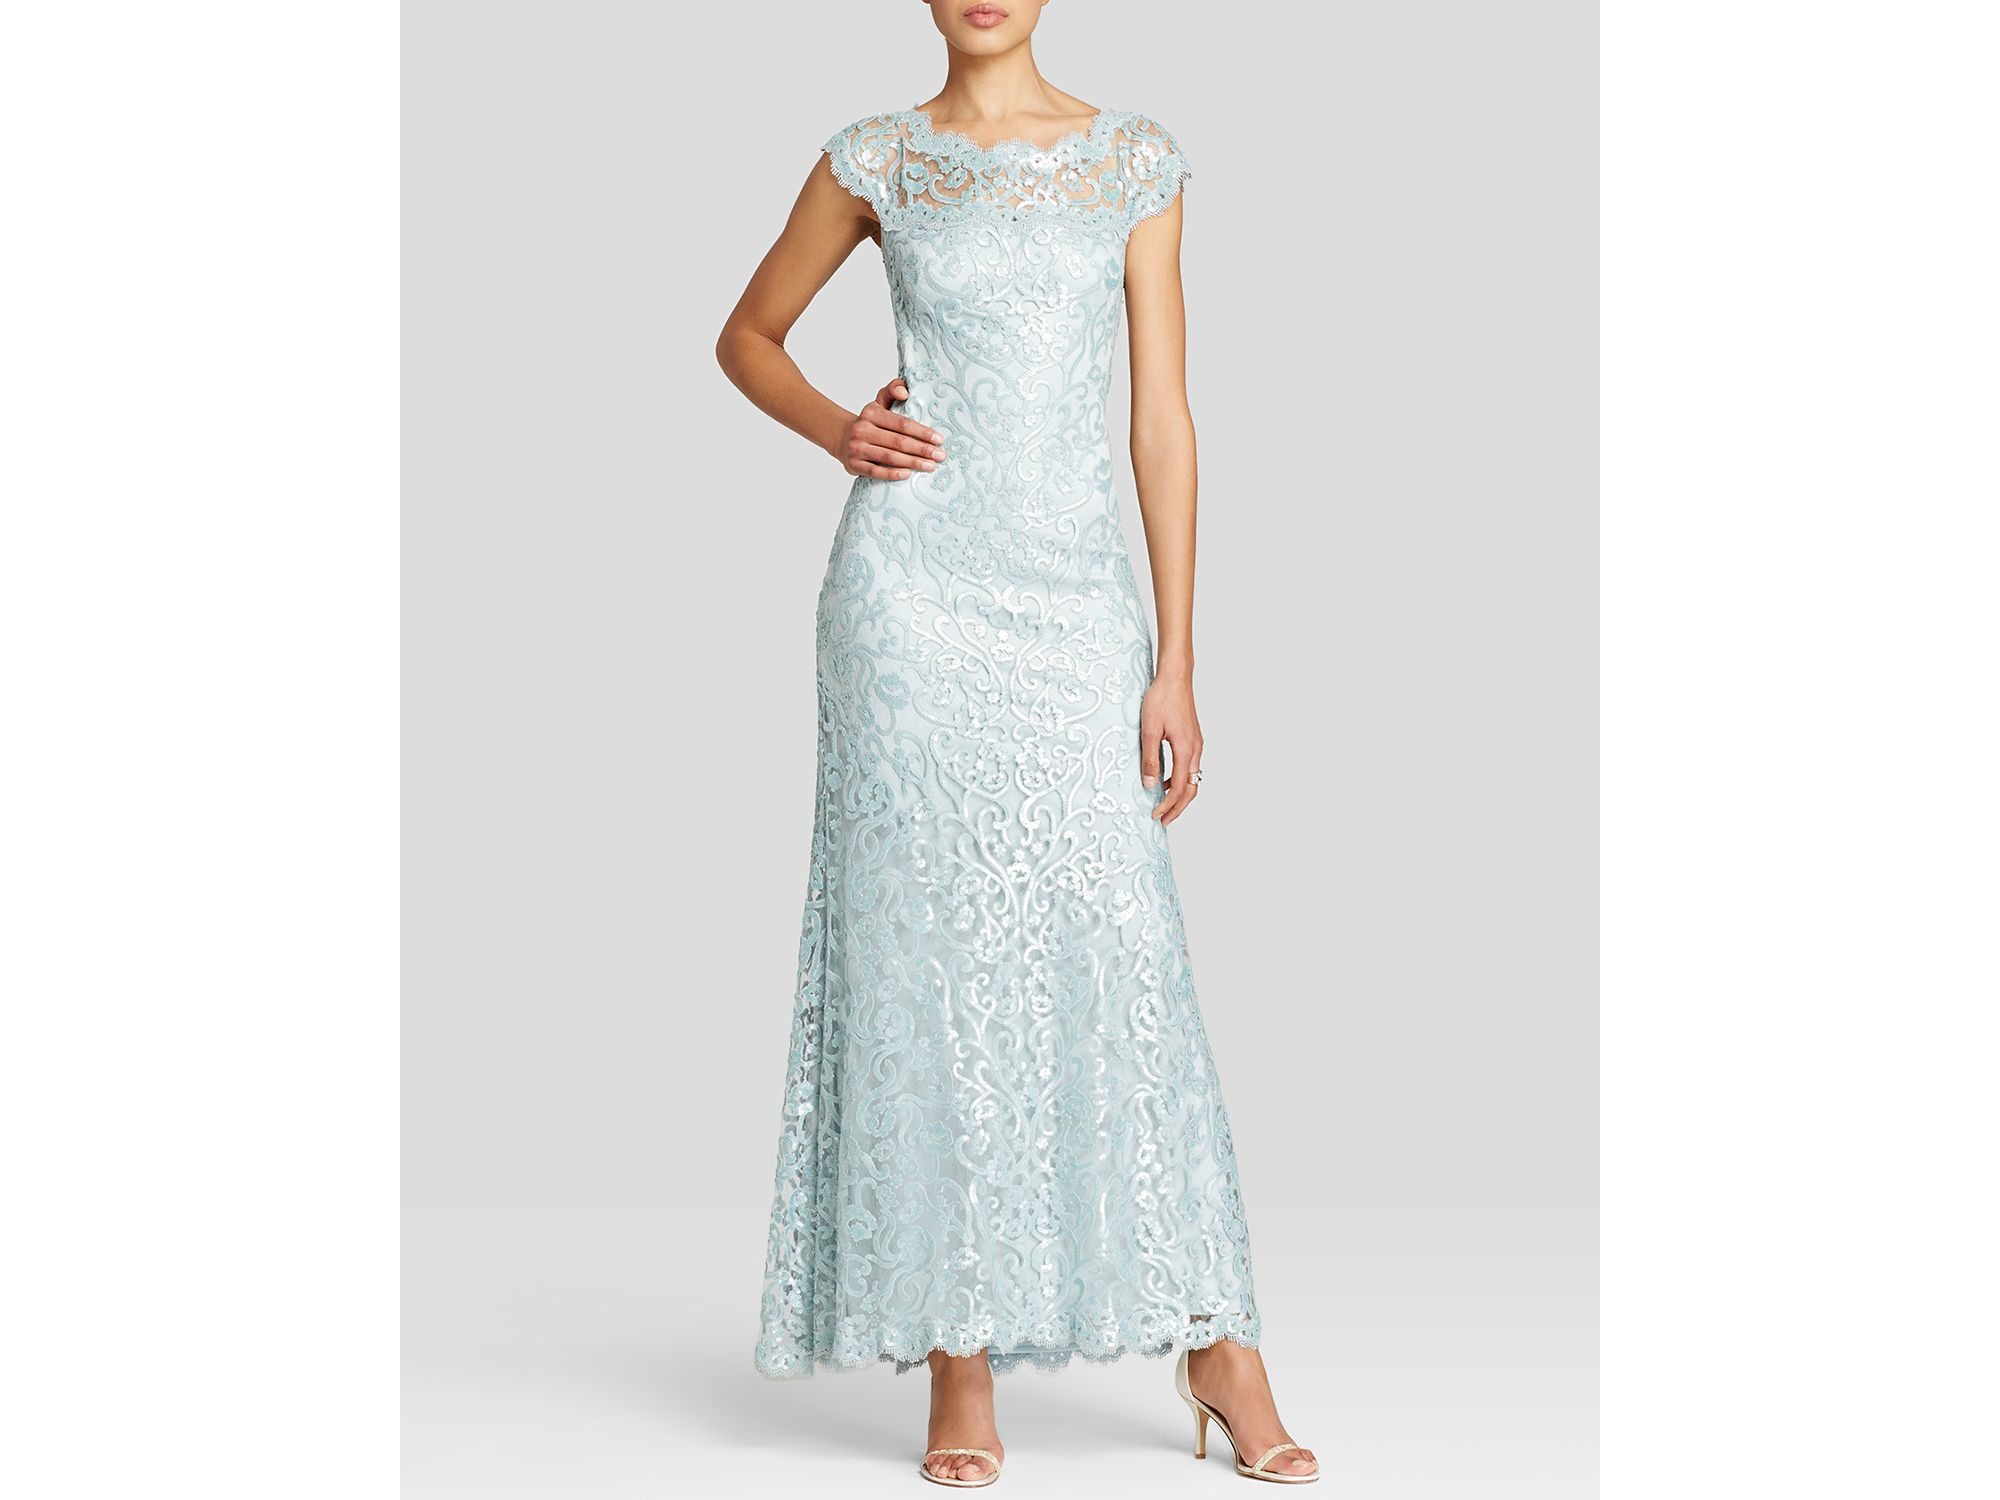 Lyst - Tadashi Shoji Gown - Cap Sleeve Illusion Neck Sequin Lace in ...